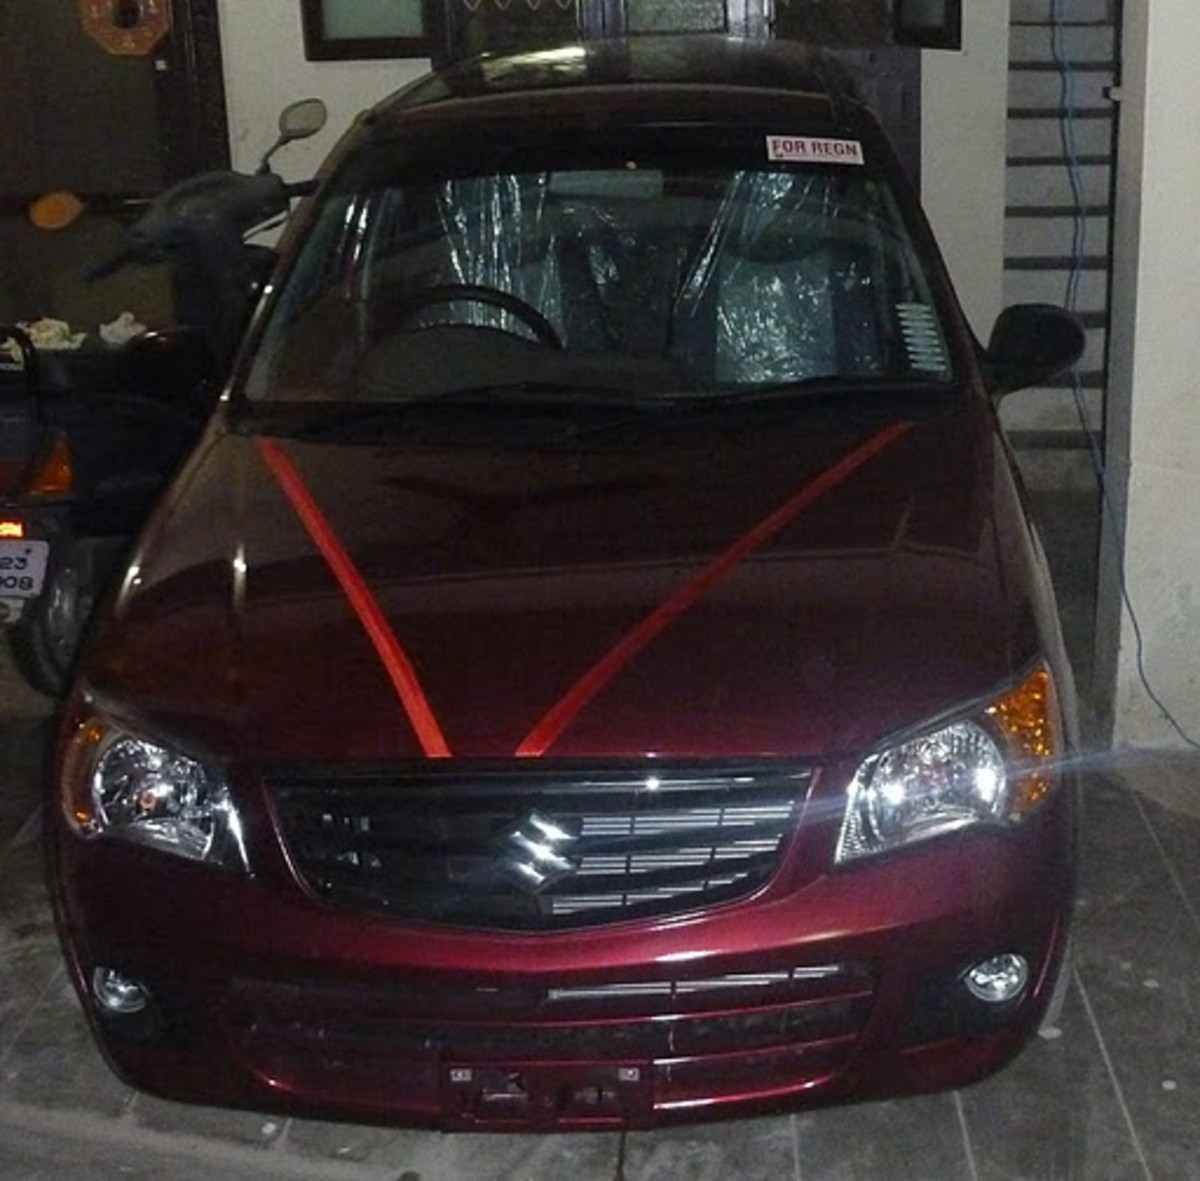 Alto K10 vxi full front view - color fire red.